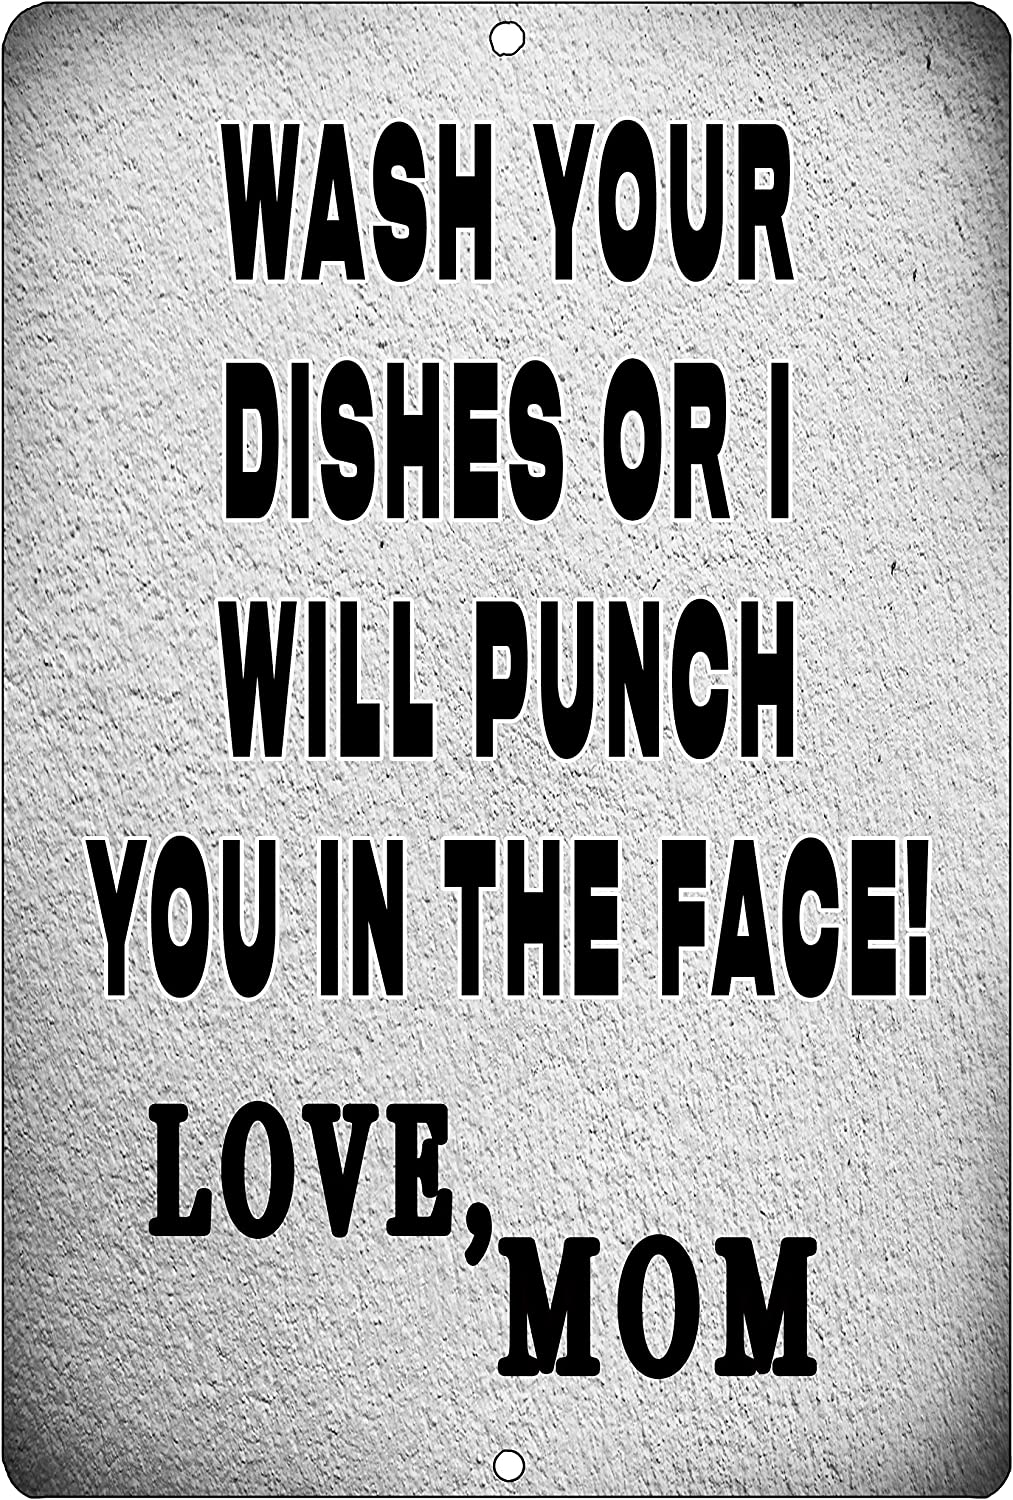 Rogue River Tactical Funny Kitchen Metal Tin Sign Wall Home Decor Bar Wash Your Dishes Signed MOM